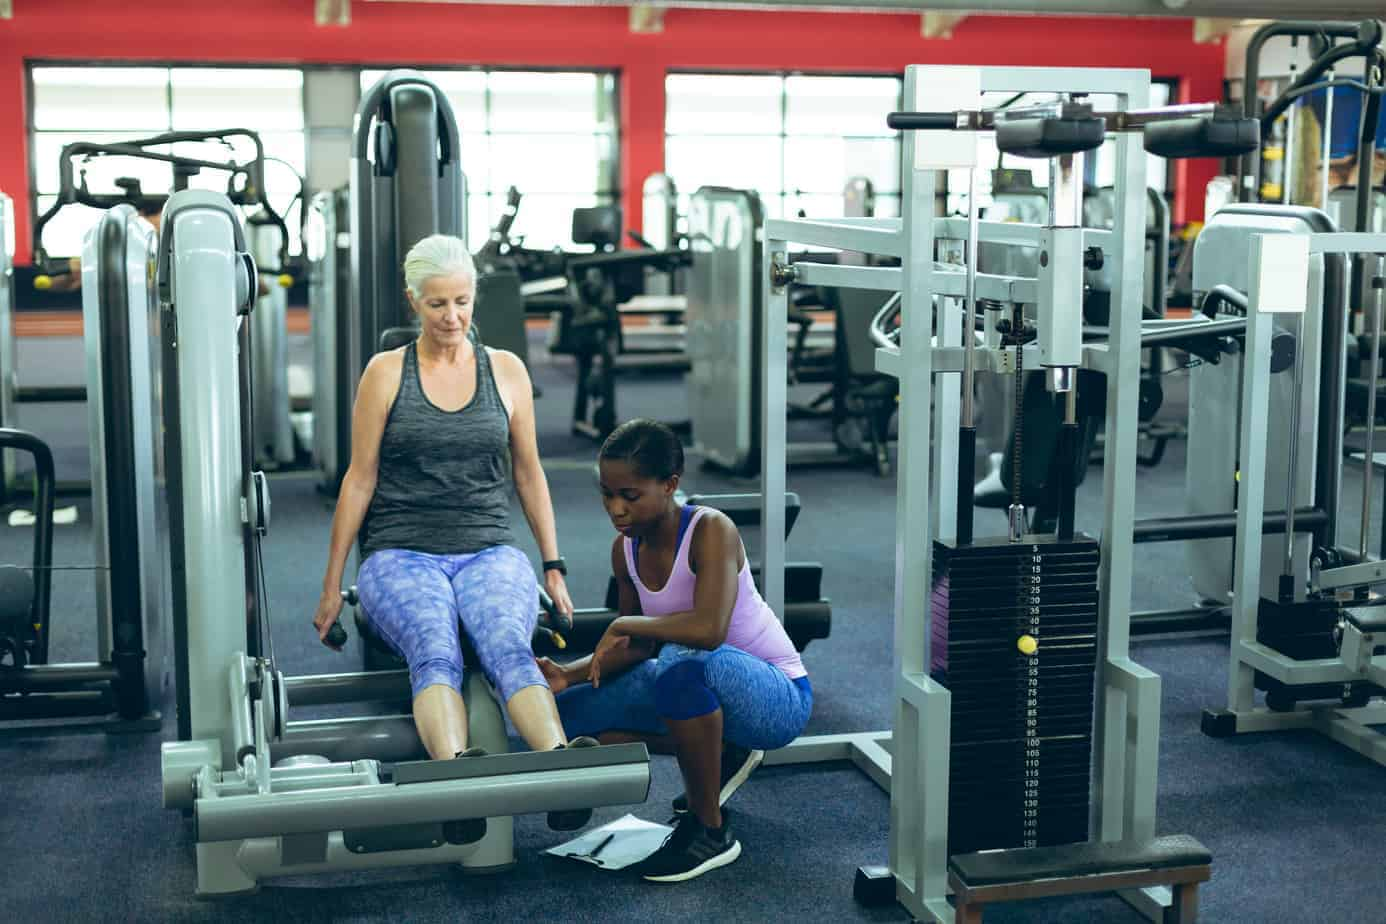 Female trainer assisting active senior woman to work out on leg curl machine.